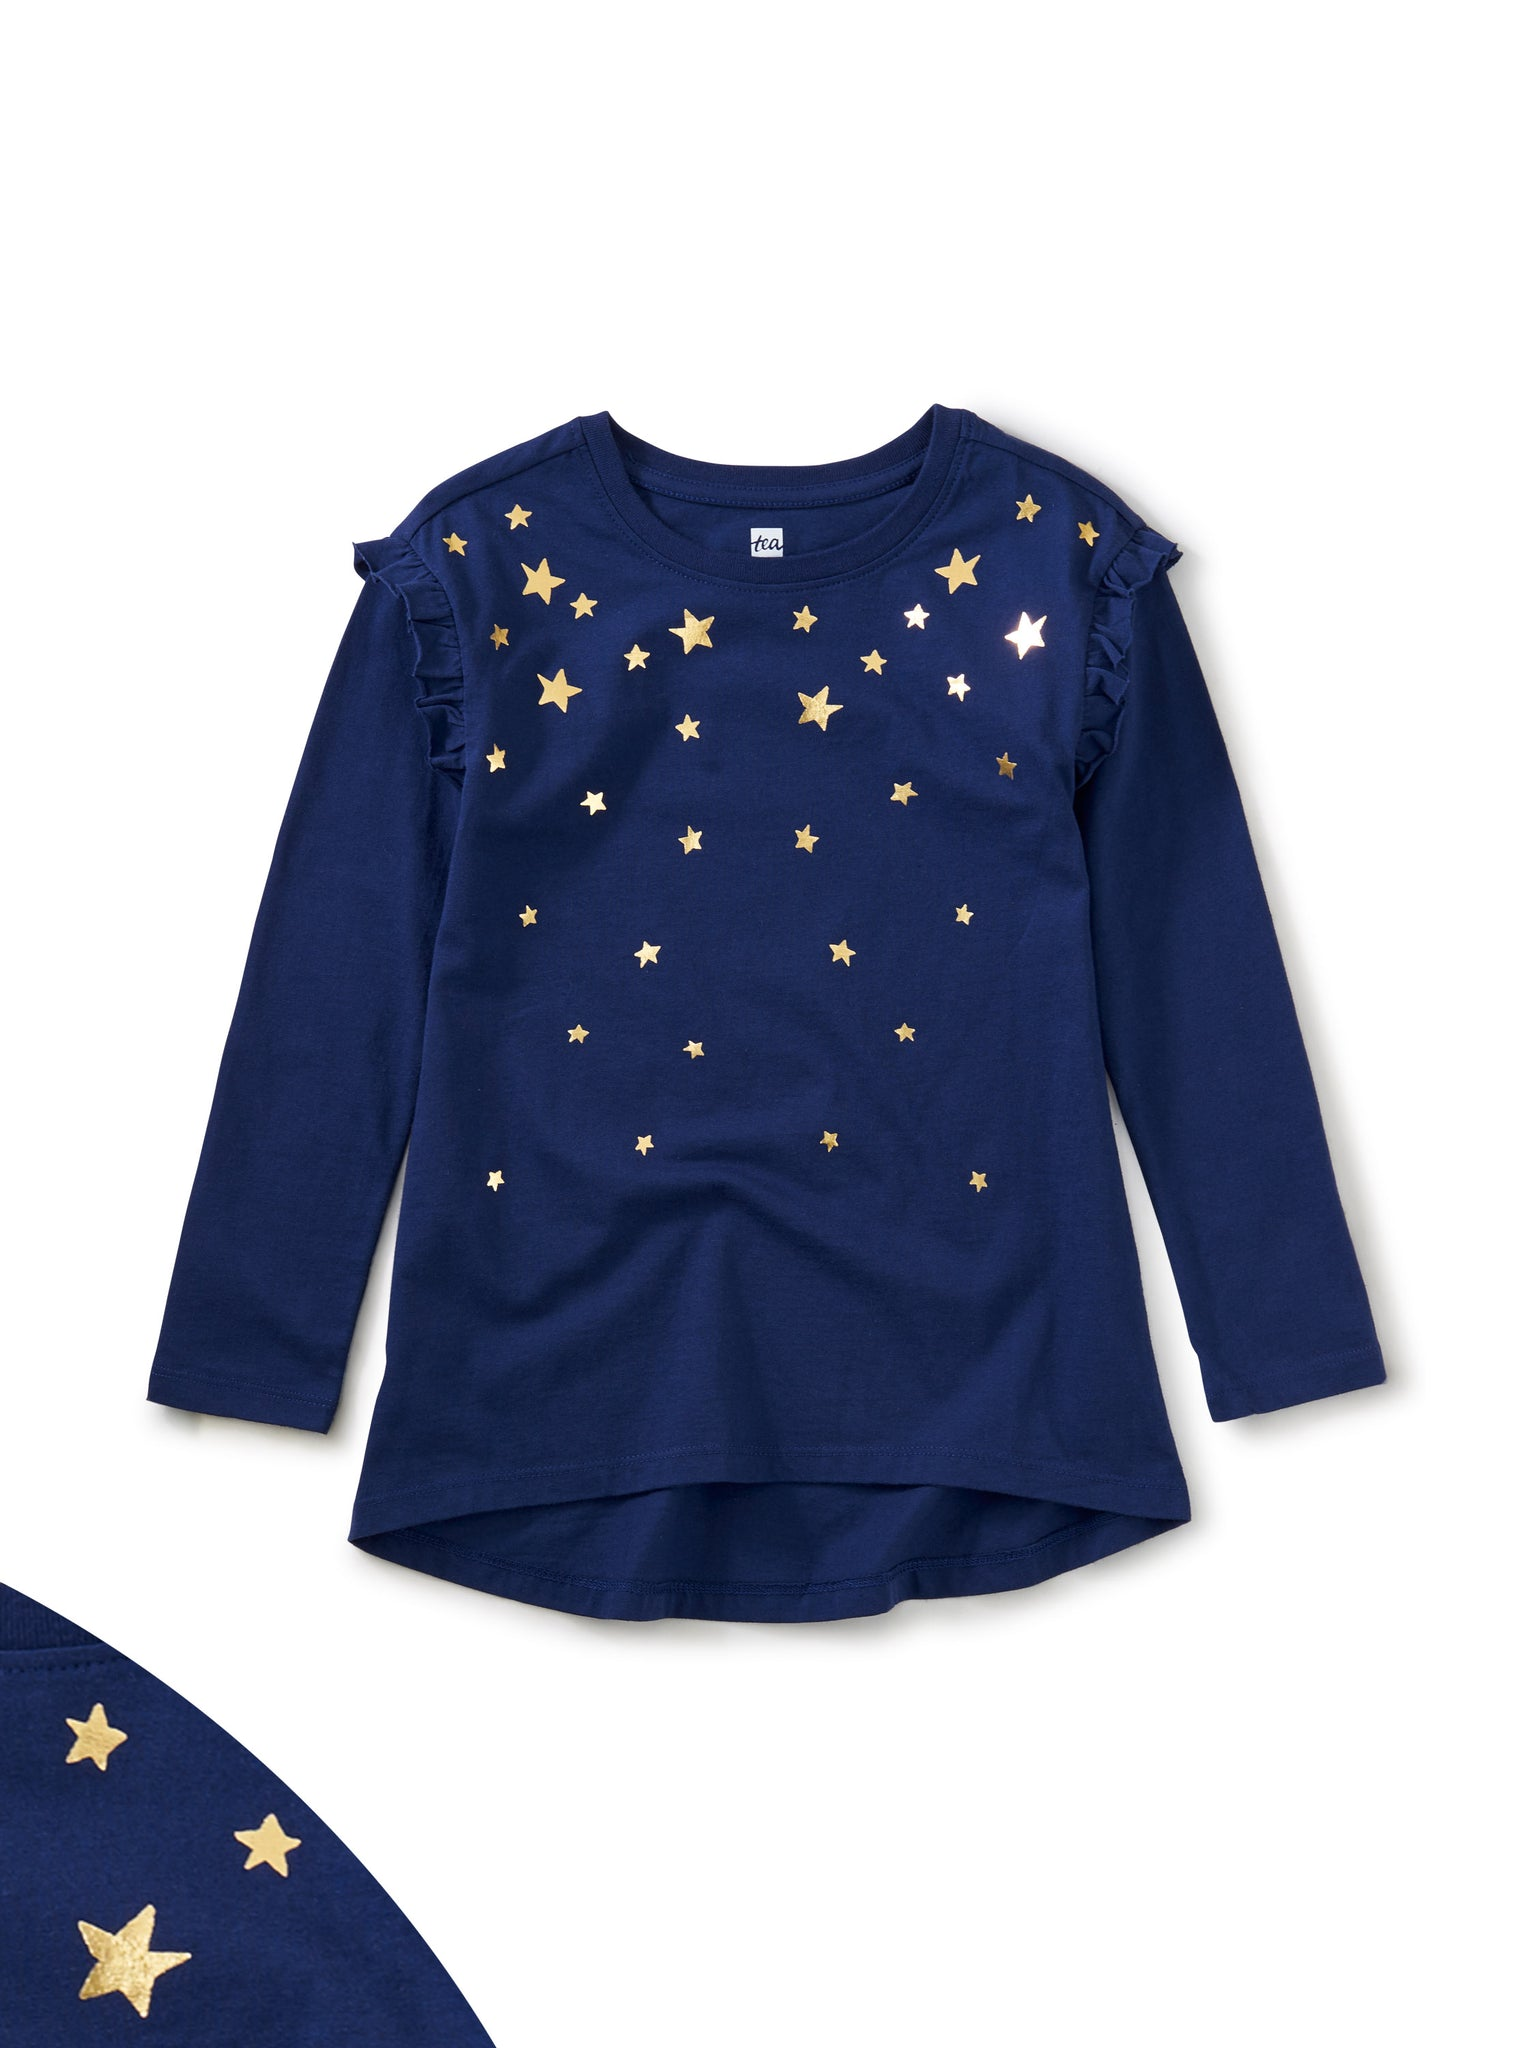 Star Struck Metallic Tunic Top - Blue Celeste